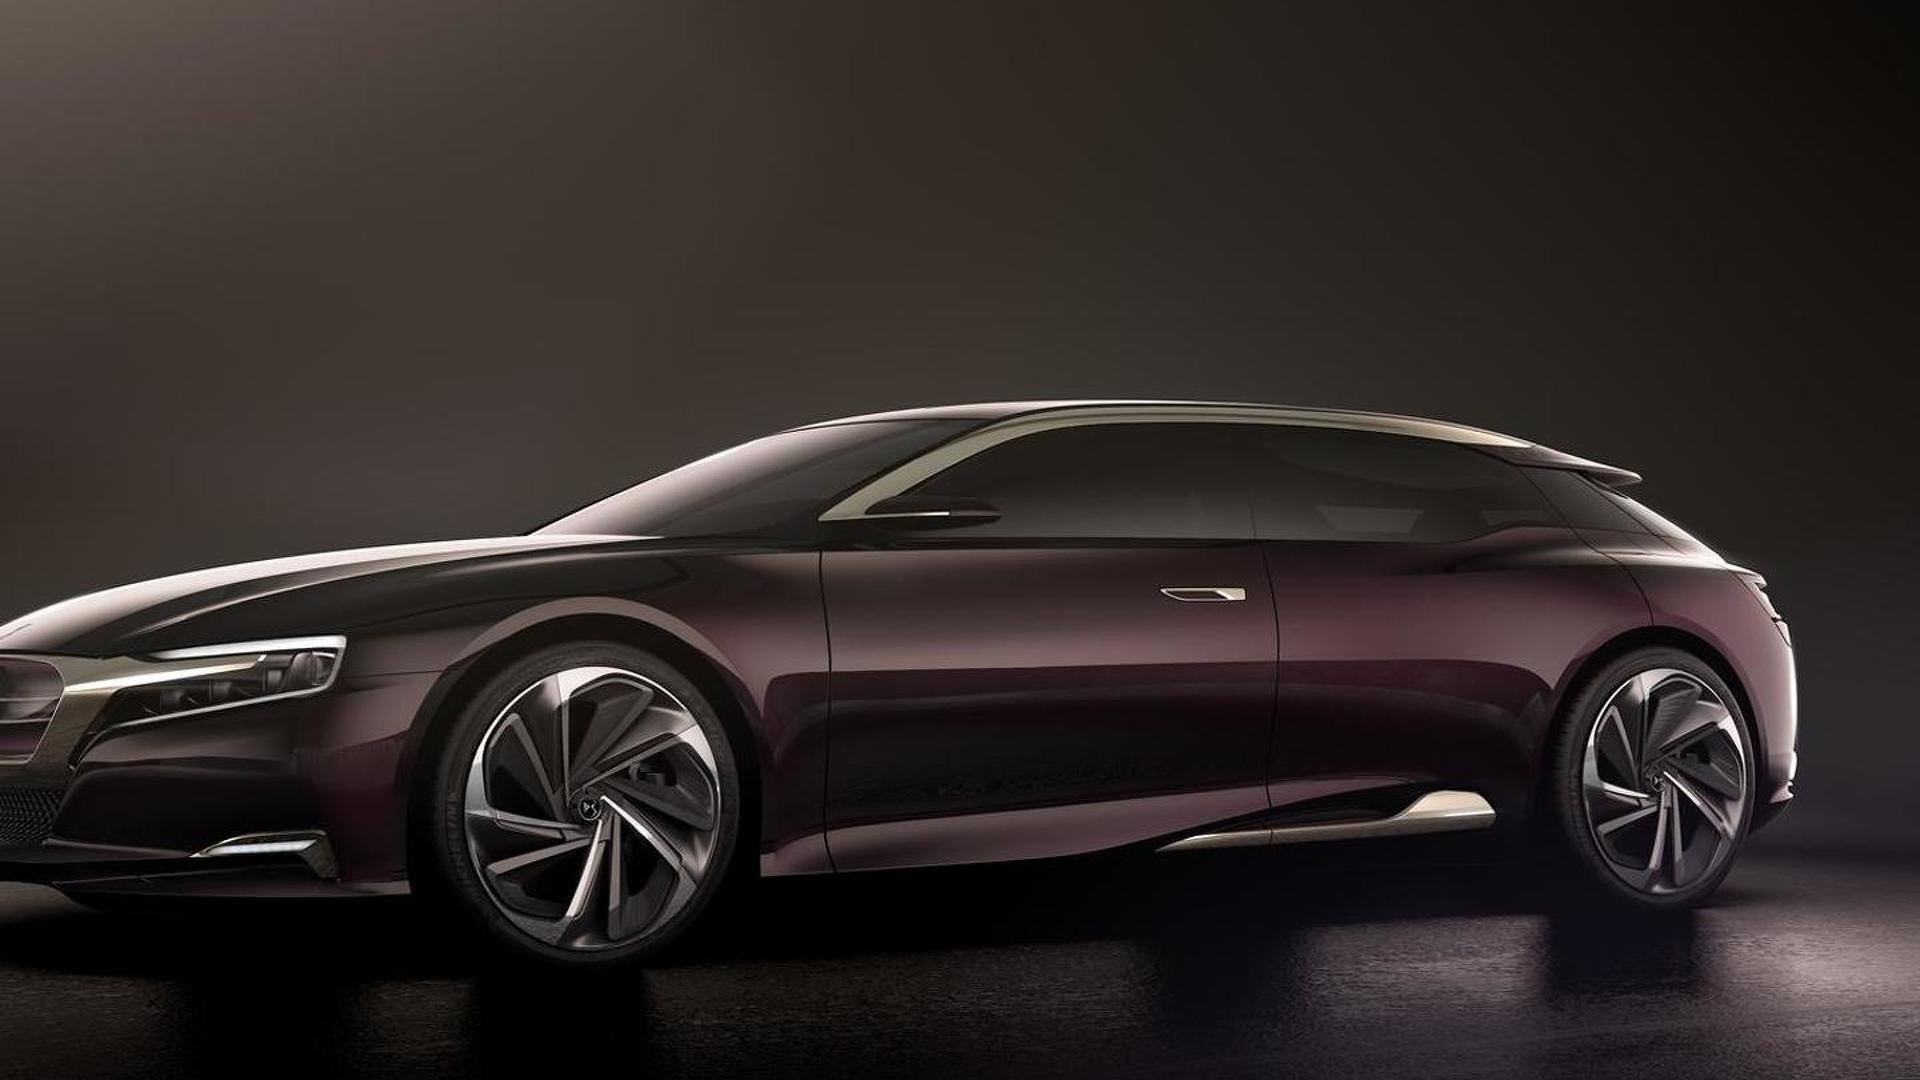 citroen ds6 to challenge the bmw 5 series mercedes e. Black Bedroom Furniture Sets. Home Design Ideas